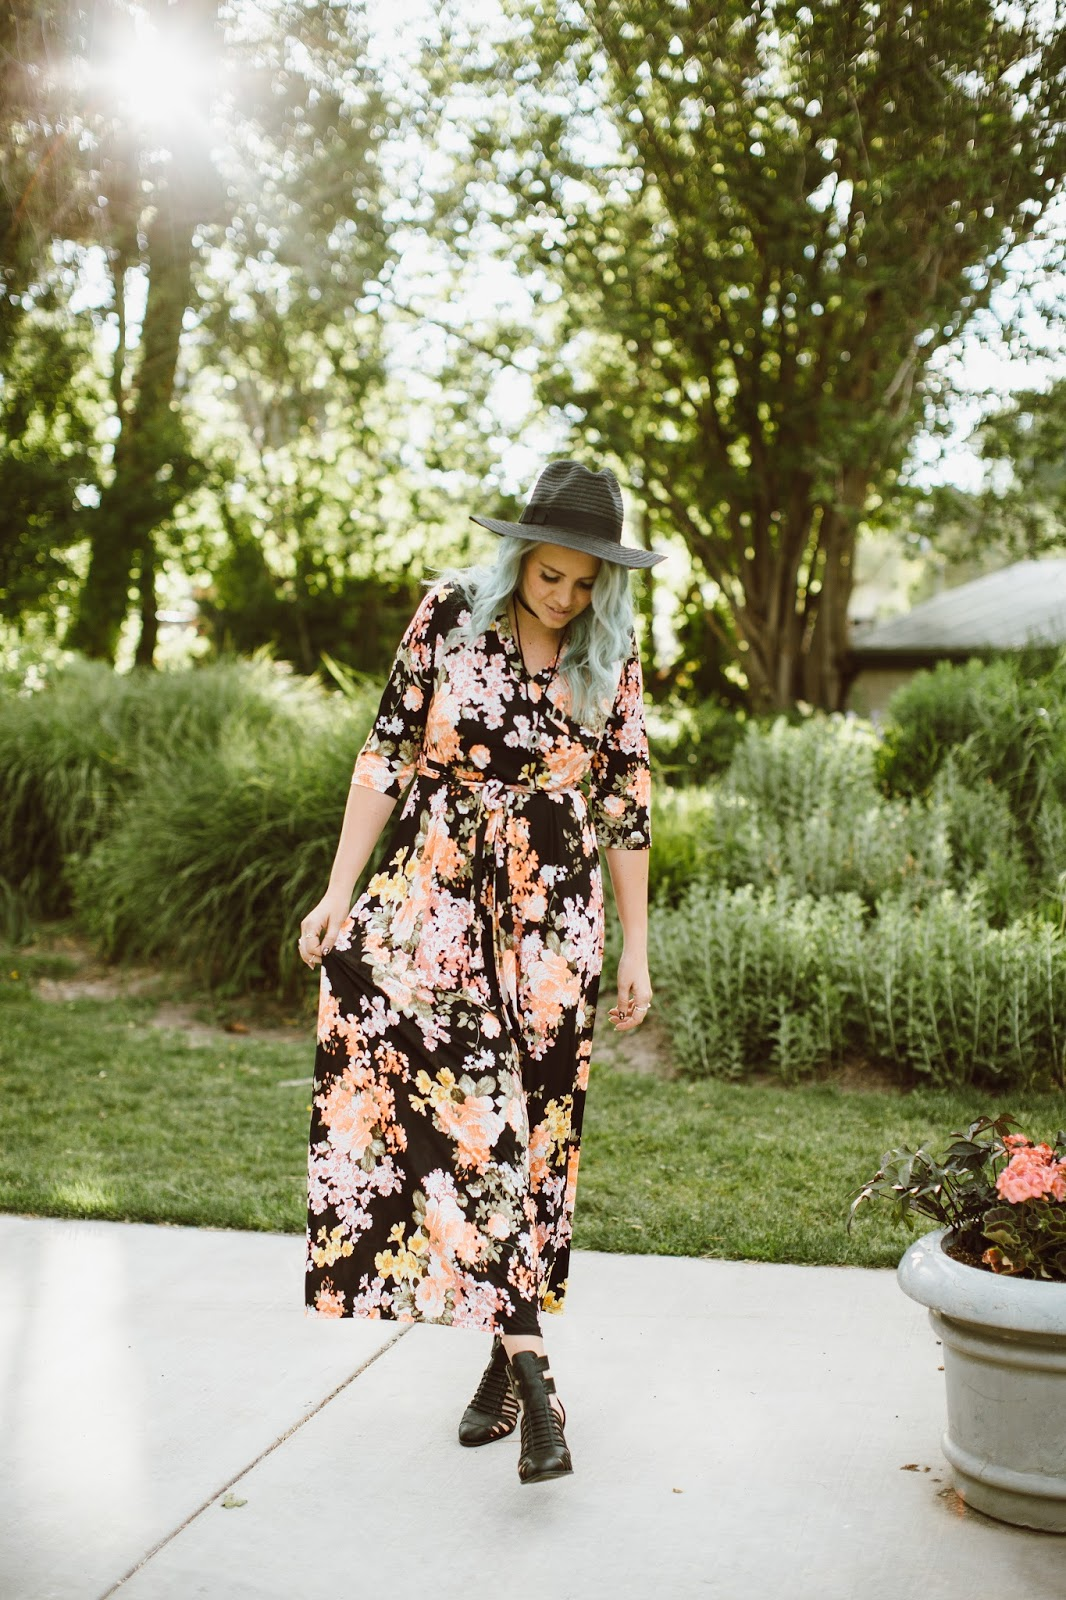 Floral Dress, Long Floral Dress, Spring Outfit